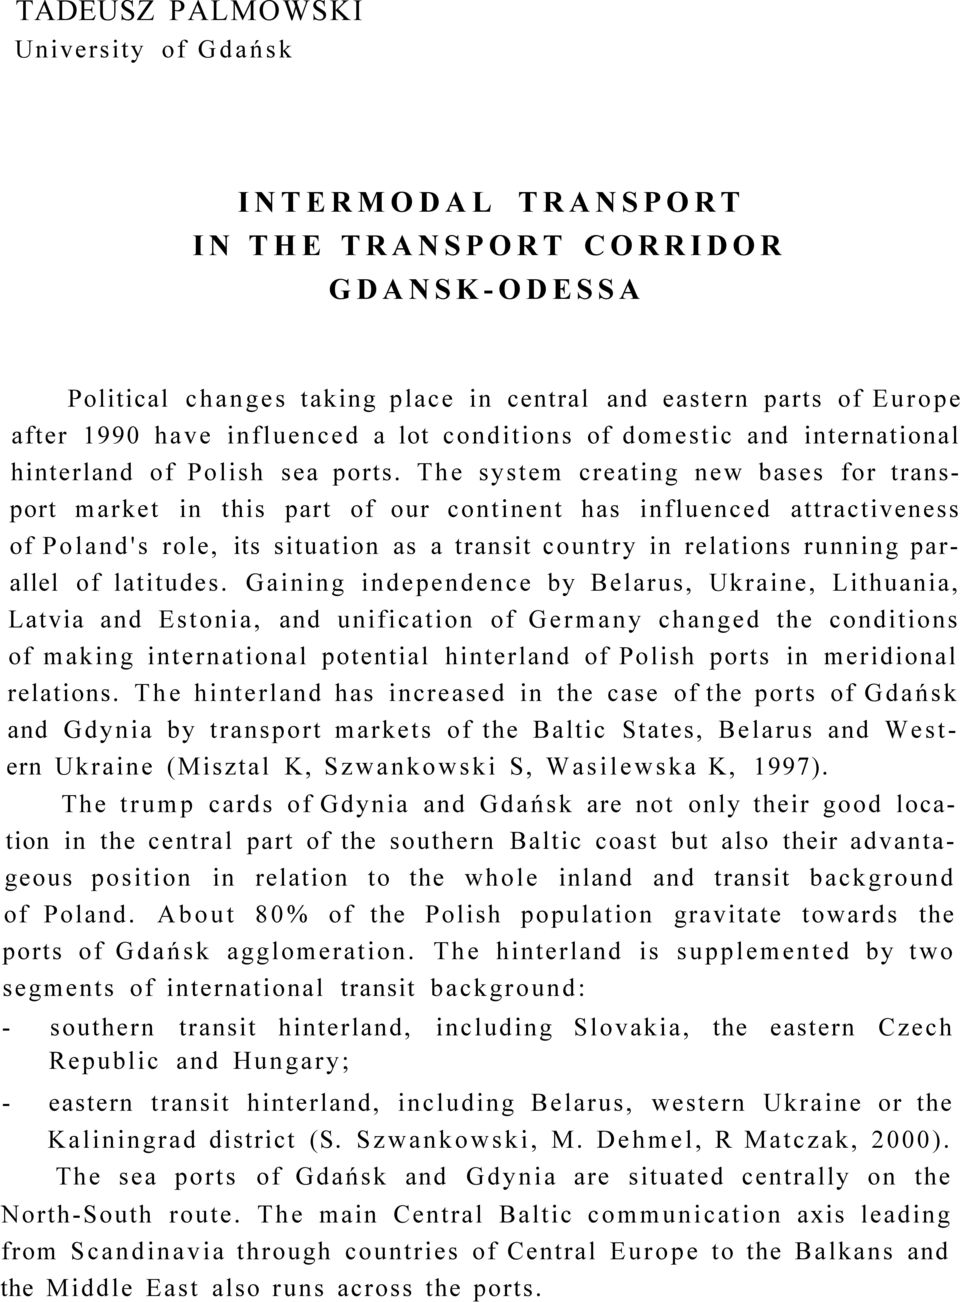 The system creating new bases for transport market in this part of our continent has influenced attractiveness of Poland's role, its situation as a transit country in relations running parallel of